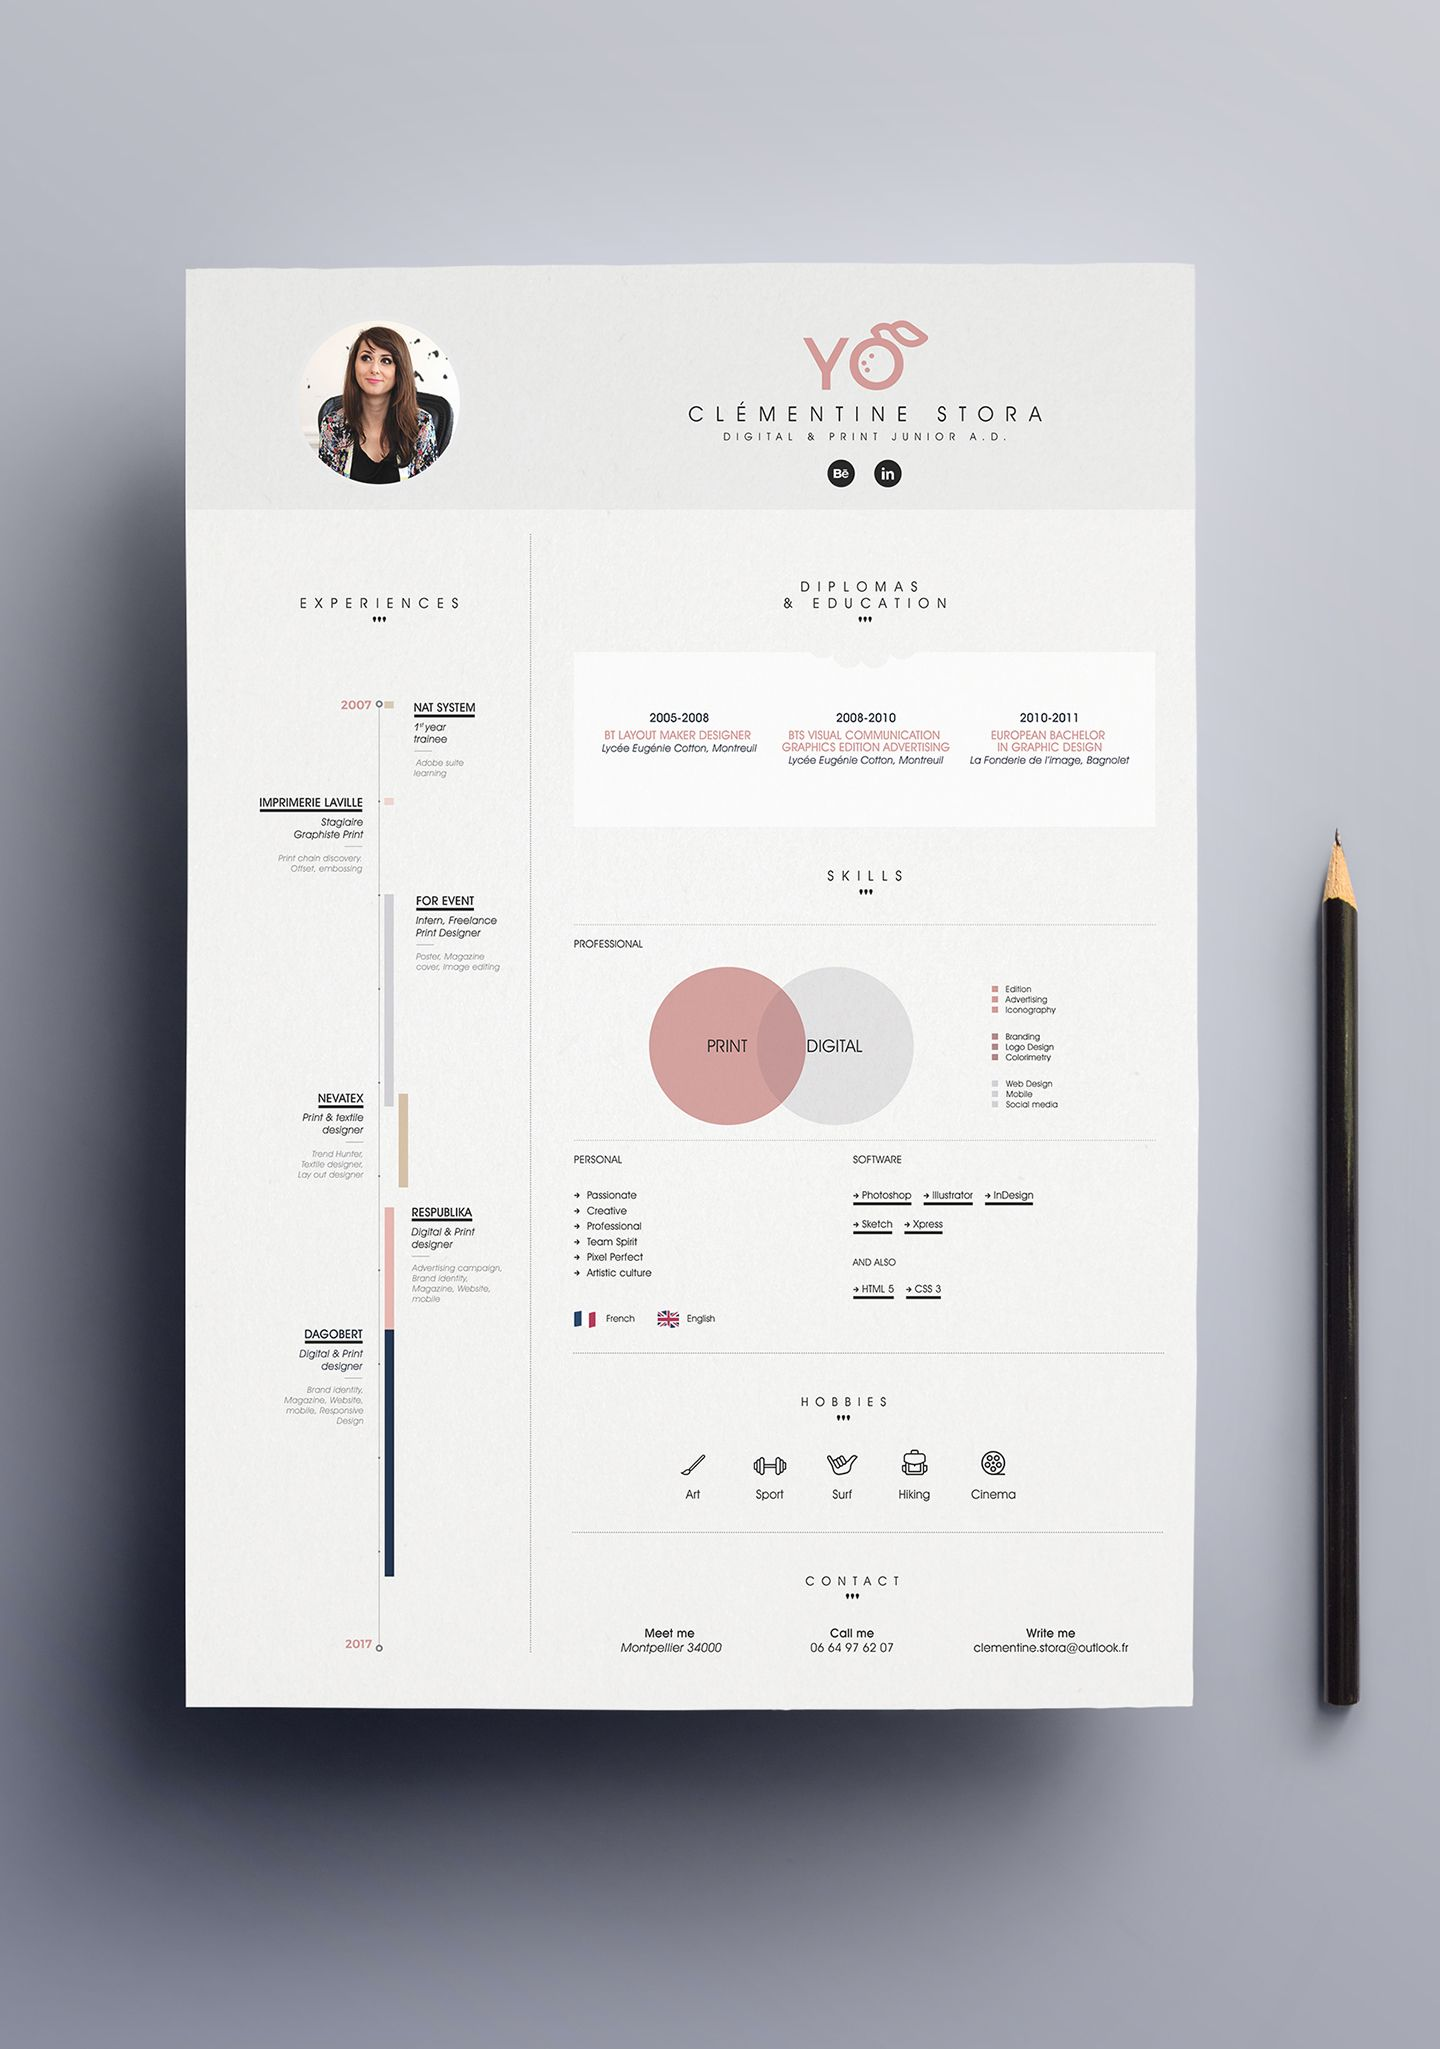 15+ Timeline Infographic Design Examples & Ideas - Daily Design Inspiration #18   Venngage Gallery